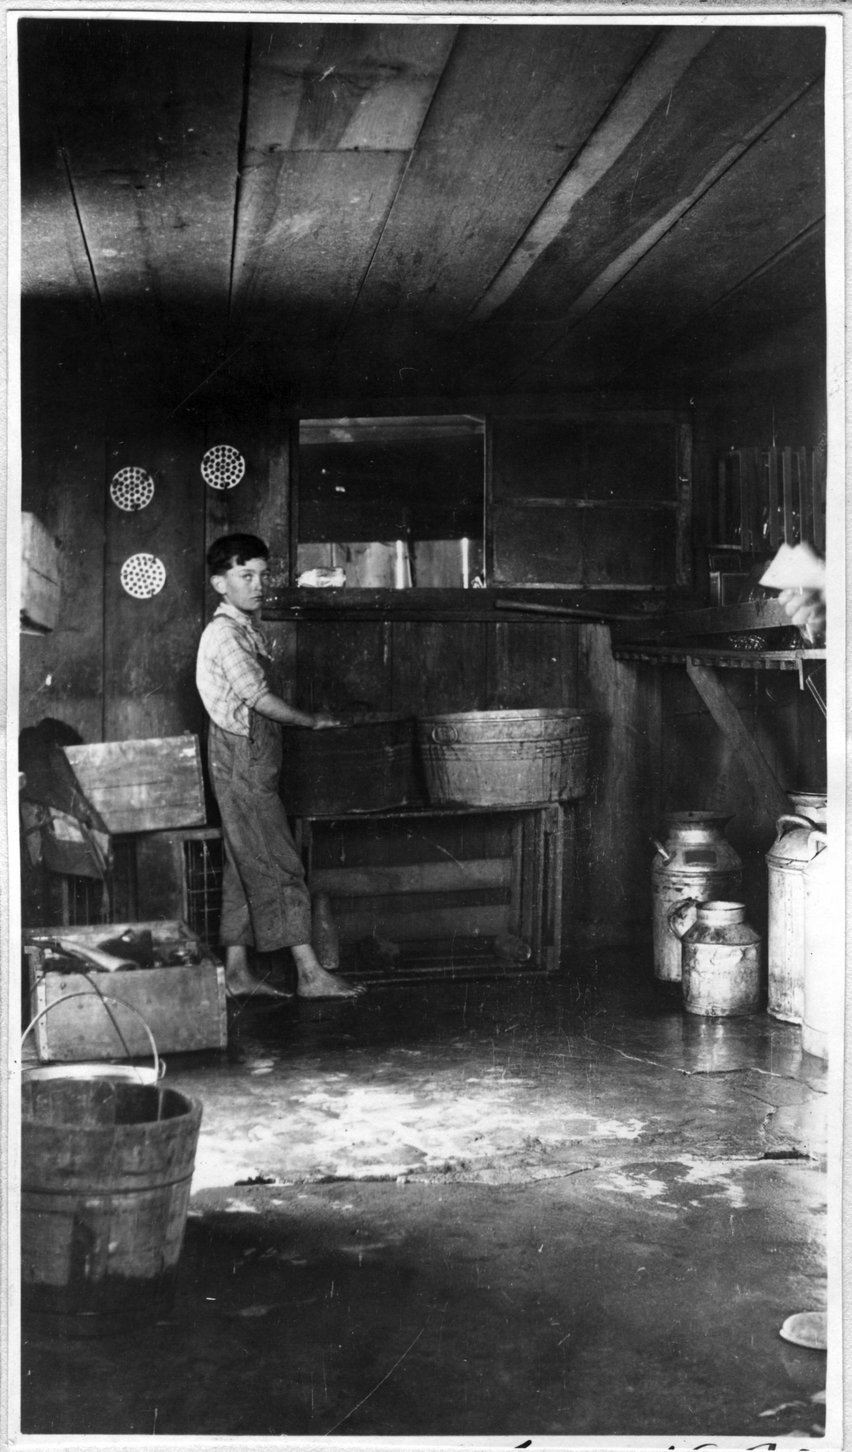 179~R. L. Jordan Milkhouse Interior Aug 1920.jpg